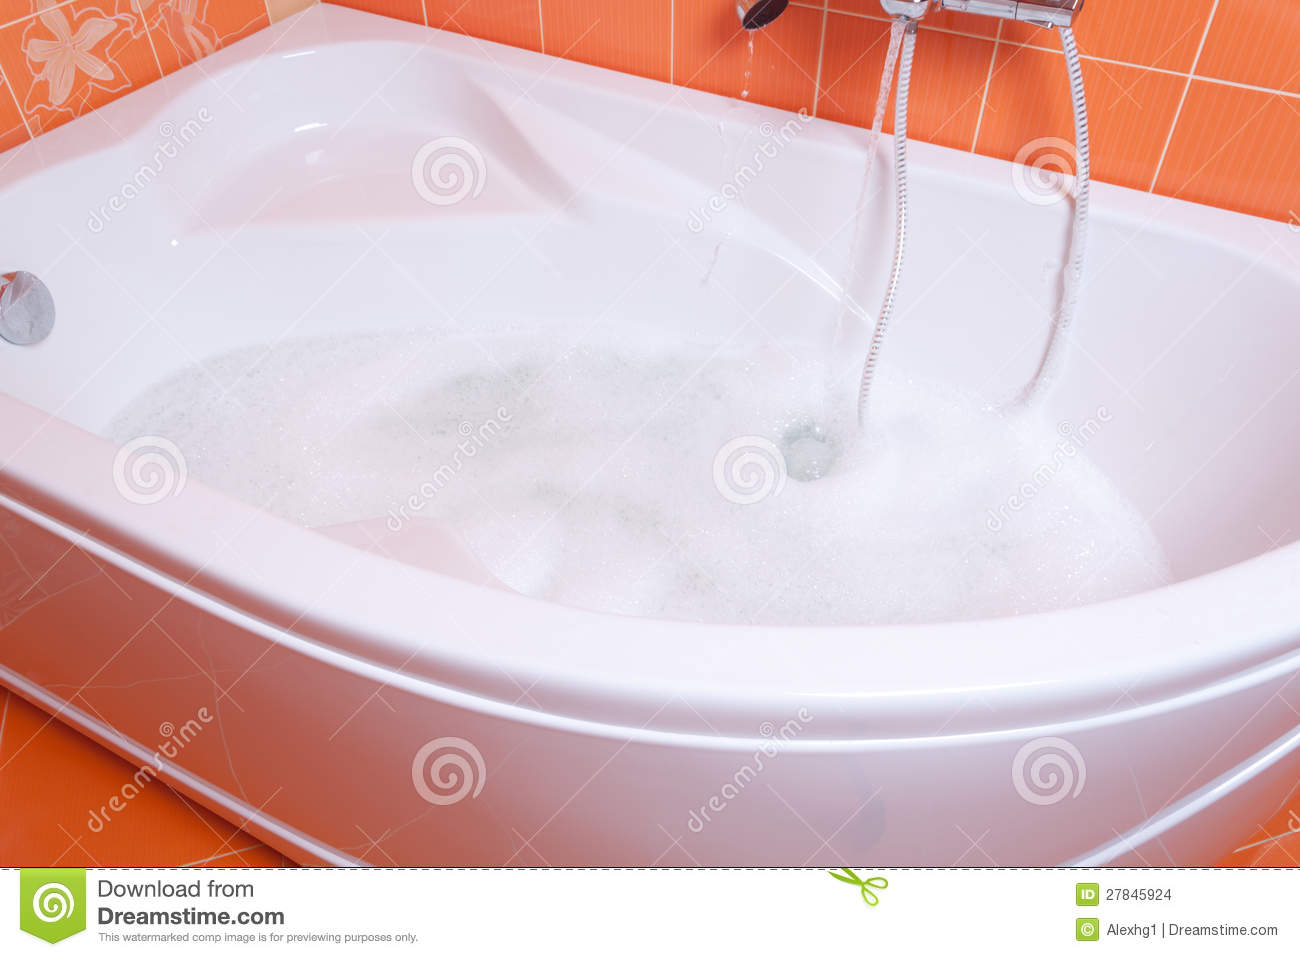 Bubble bath tub stock photo. Image of bubble, residential - 27845924